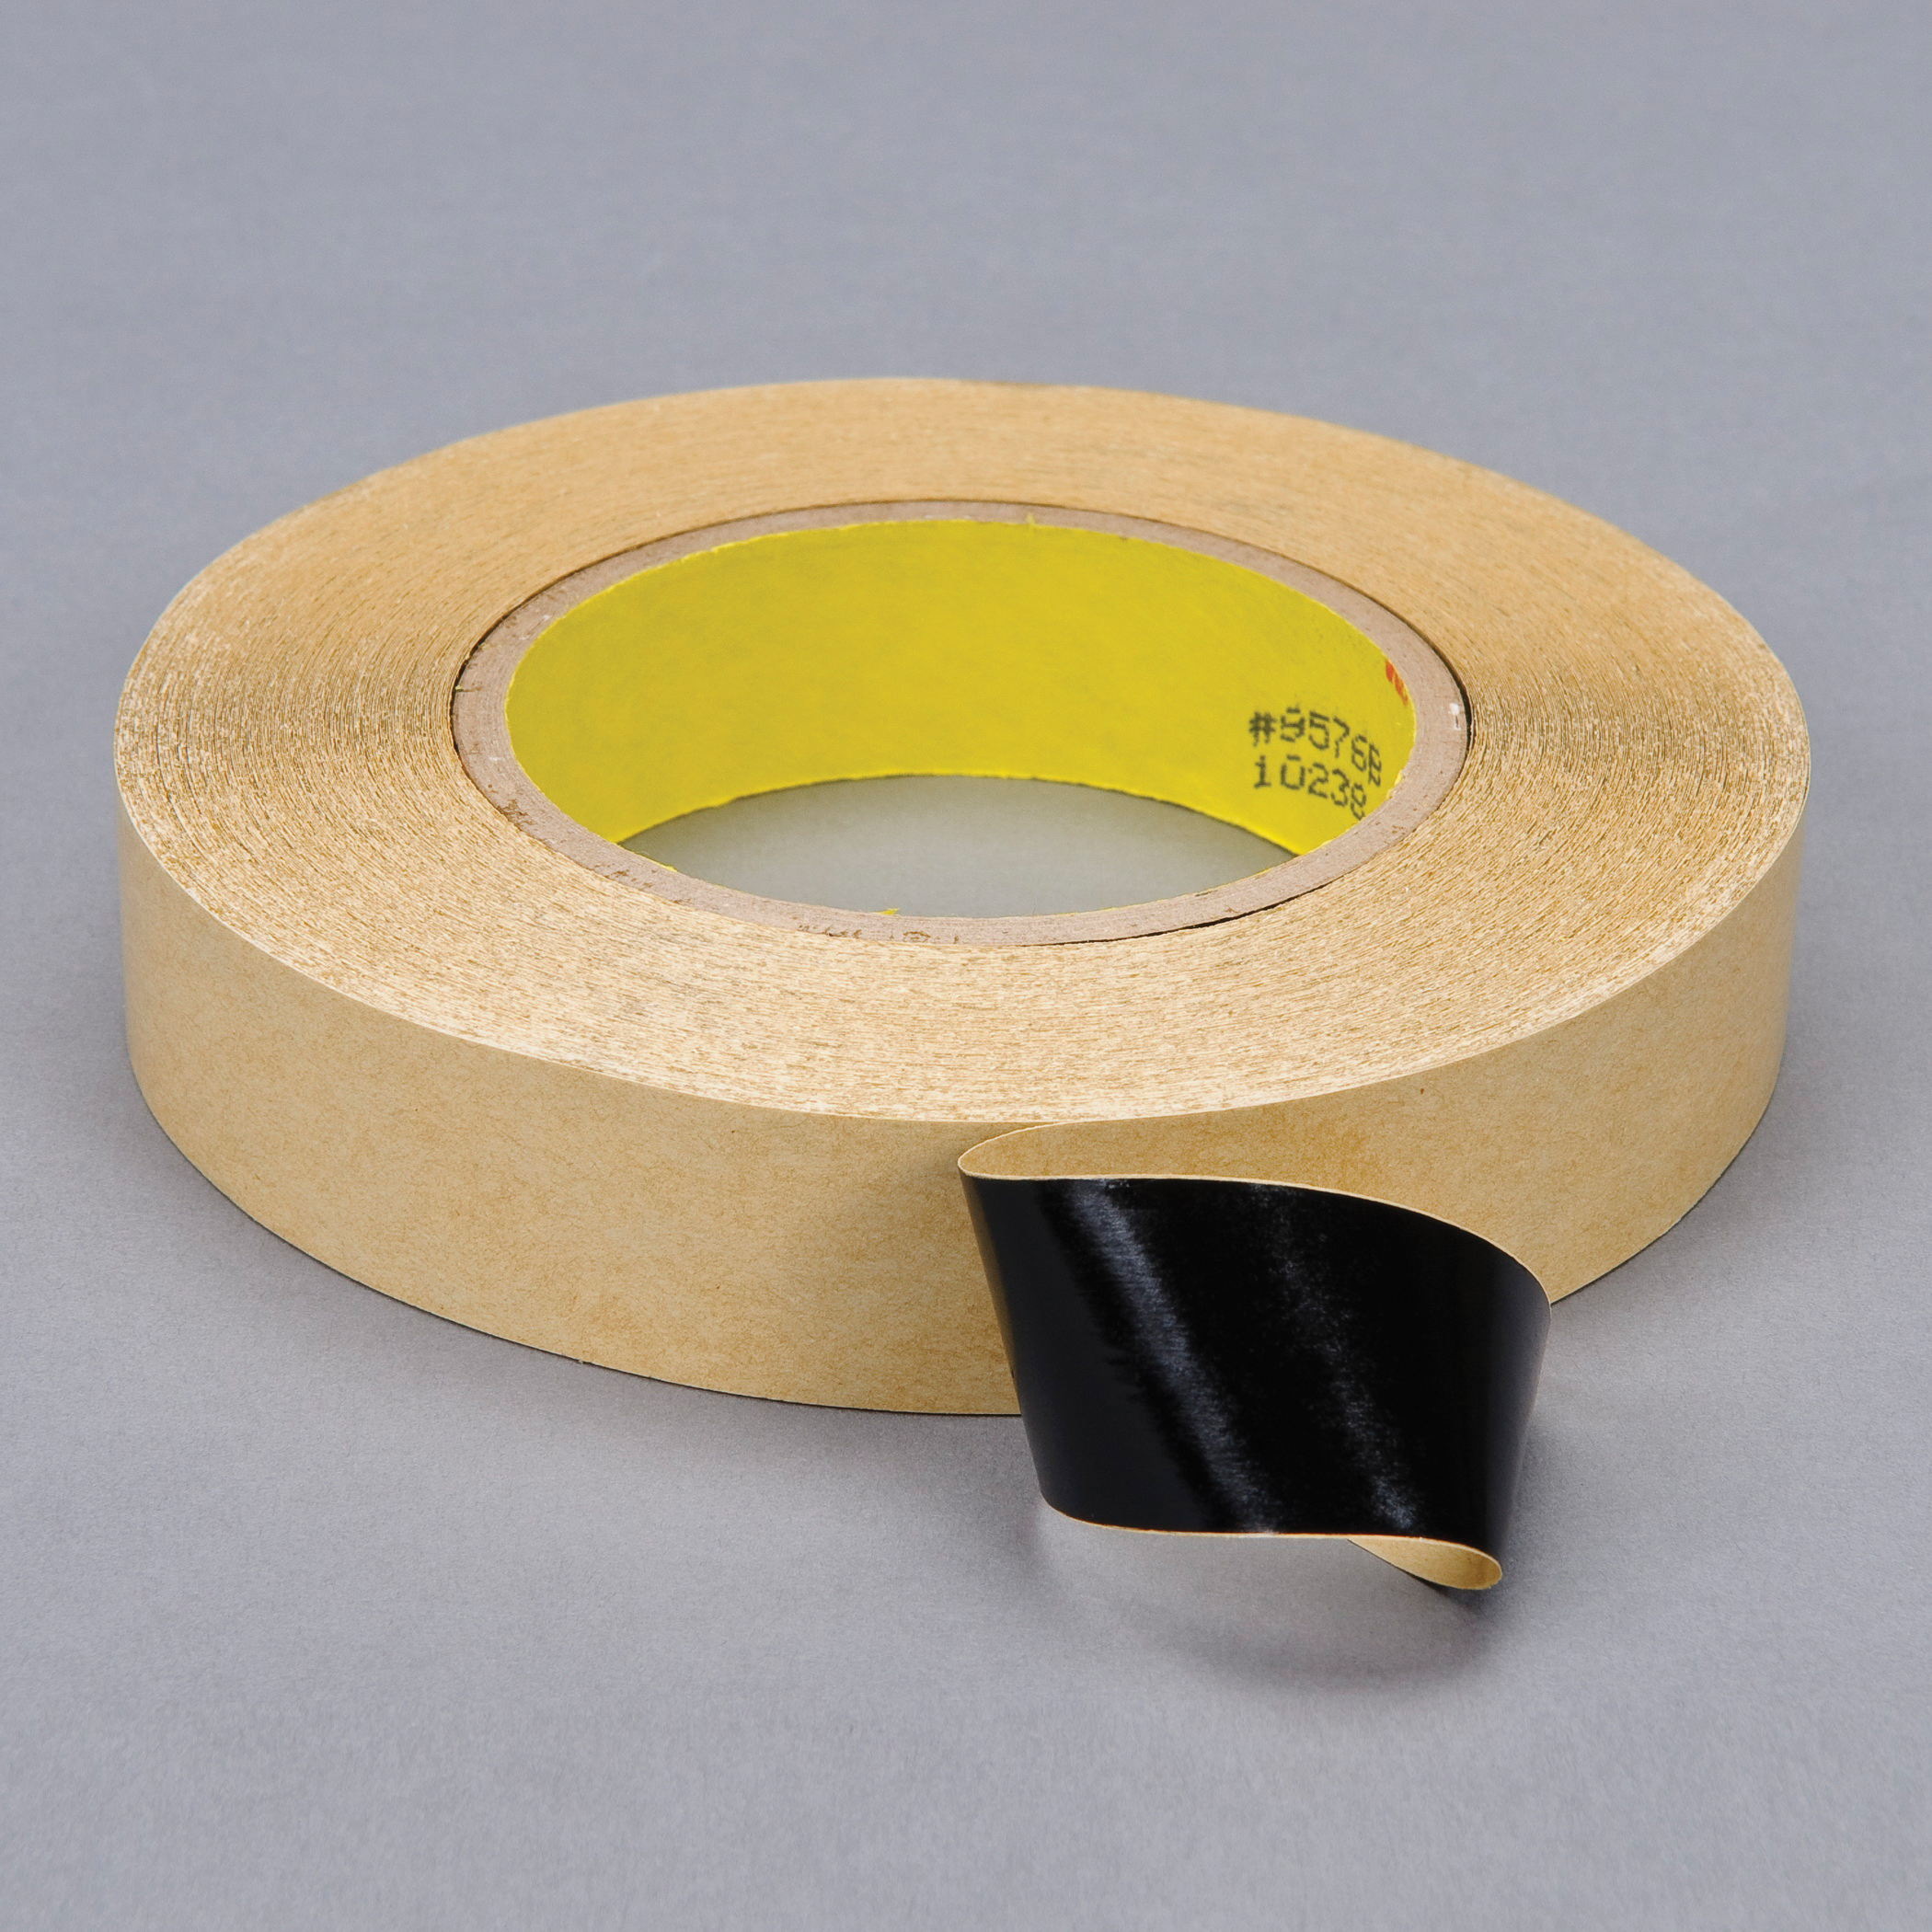 3M™ 021200-40476 Double Coated Tape, 60 yd L x 1 in W, 4 mil THK, 400HT Acrylic Adhesive, Polypropylene Backing, Black